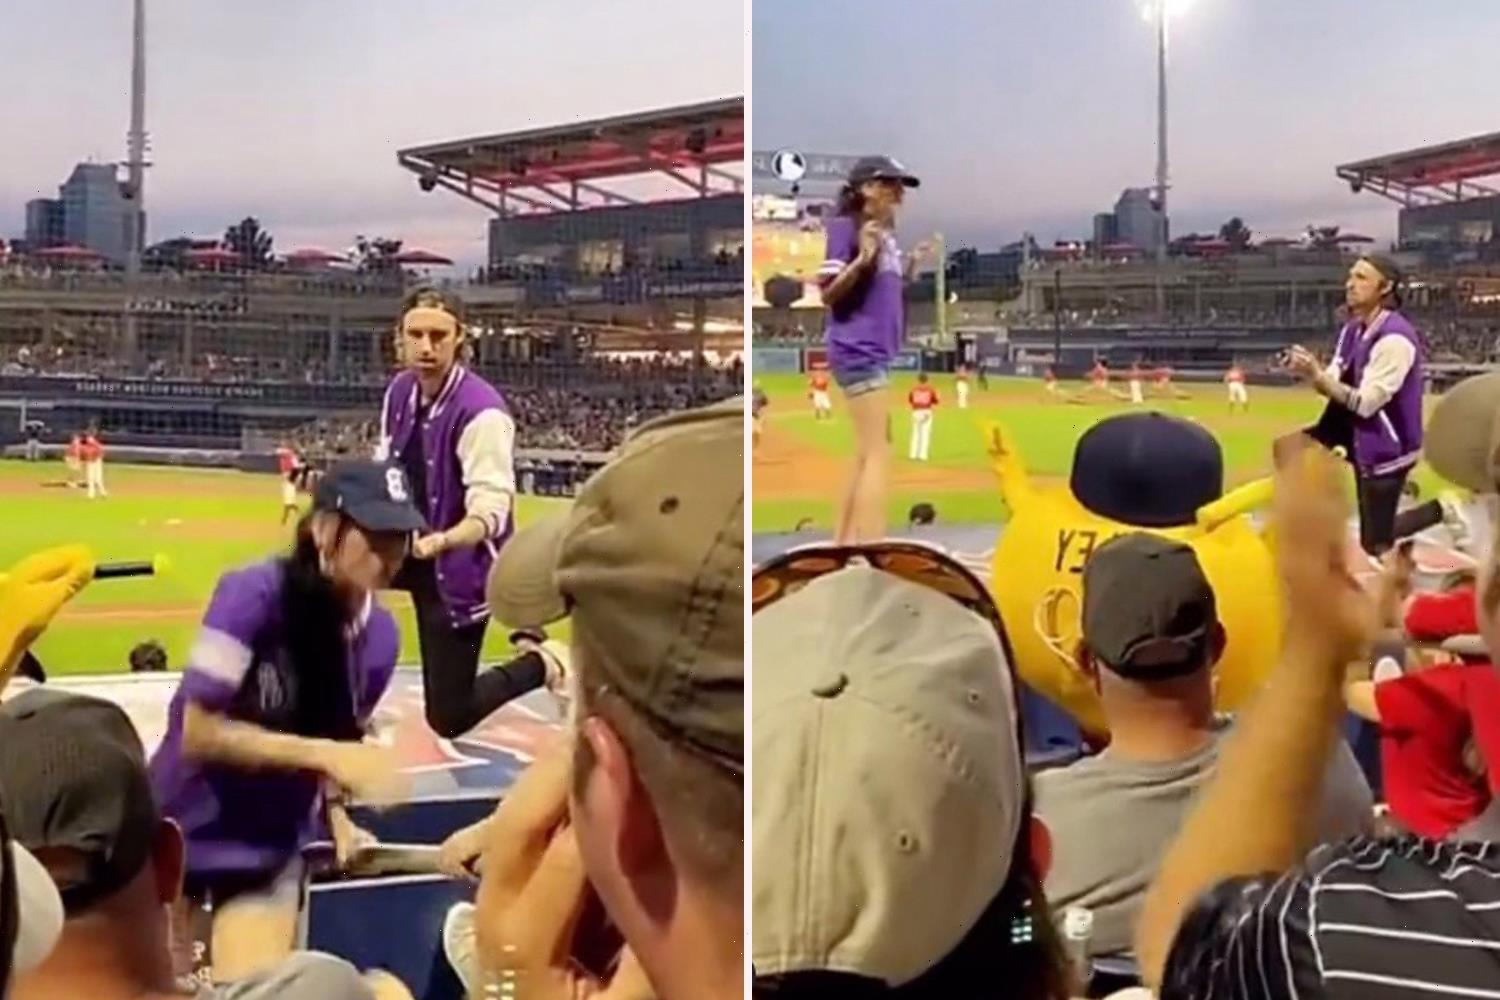 Cringing moment baseball fan's marriage proposal at game goes horribly wrong as girlfriend RUNS away… but is it real?